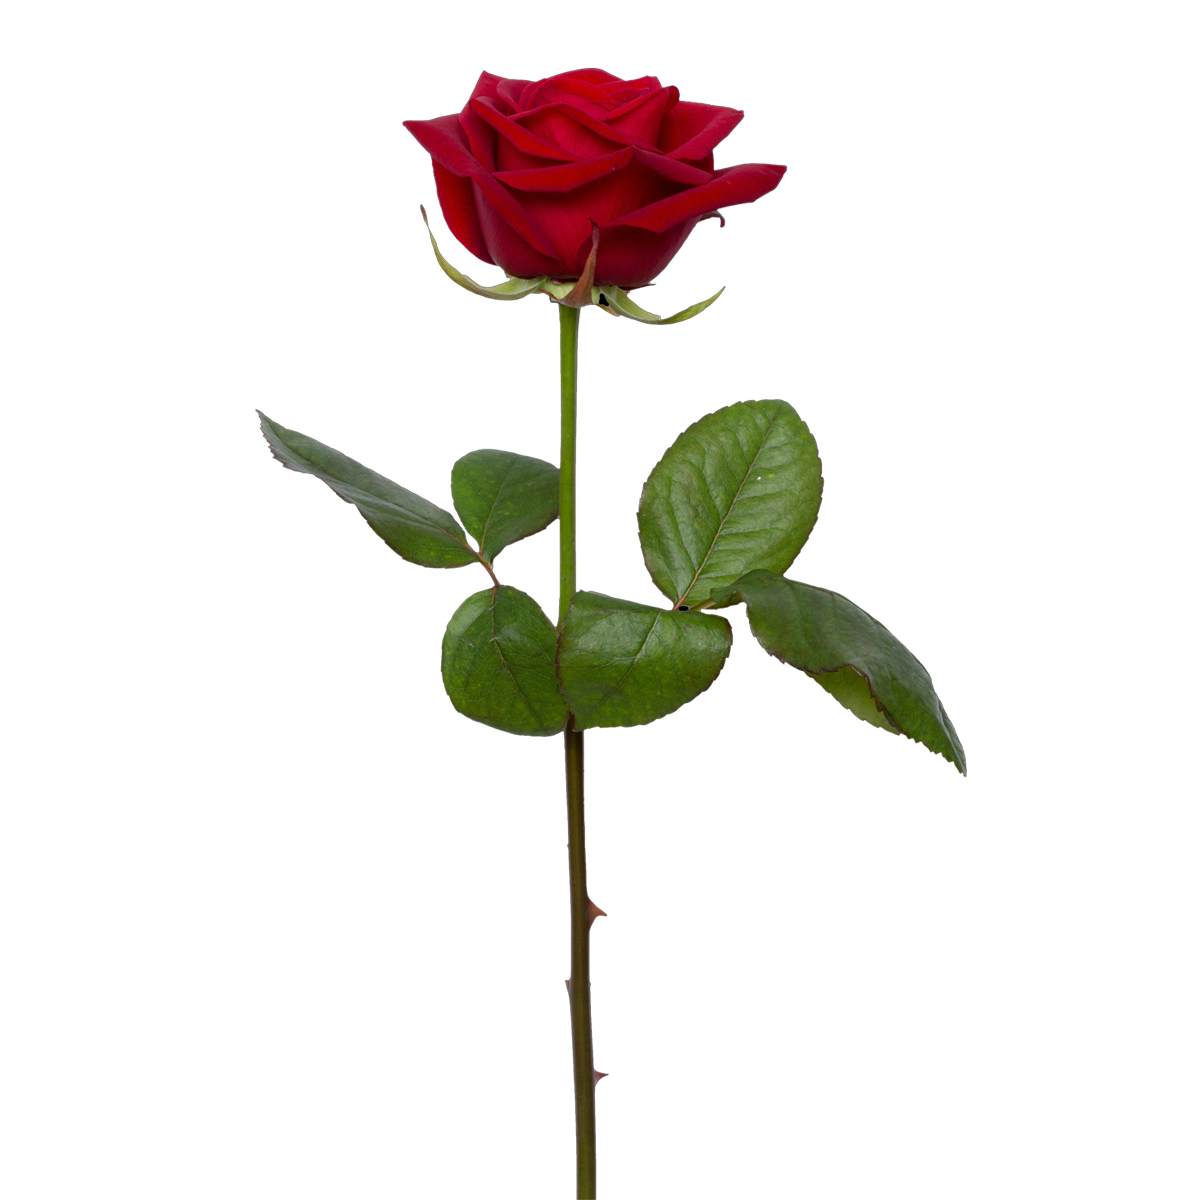 Ree Download High Quality Red Single Rose Png Image Transparent Background It S Good Quality Red Rose Png Image Transpare Red Rose Png Rose Background Rose Art